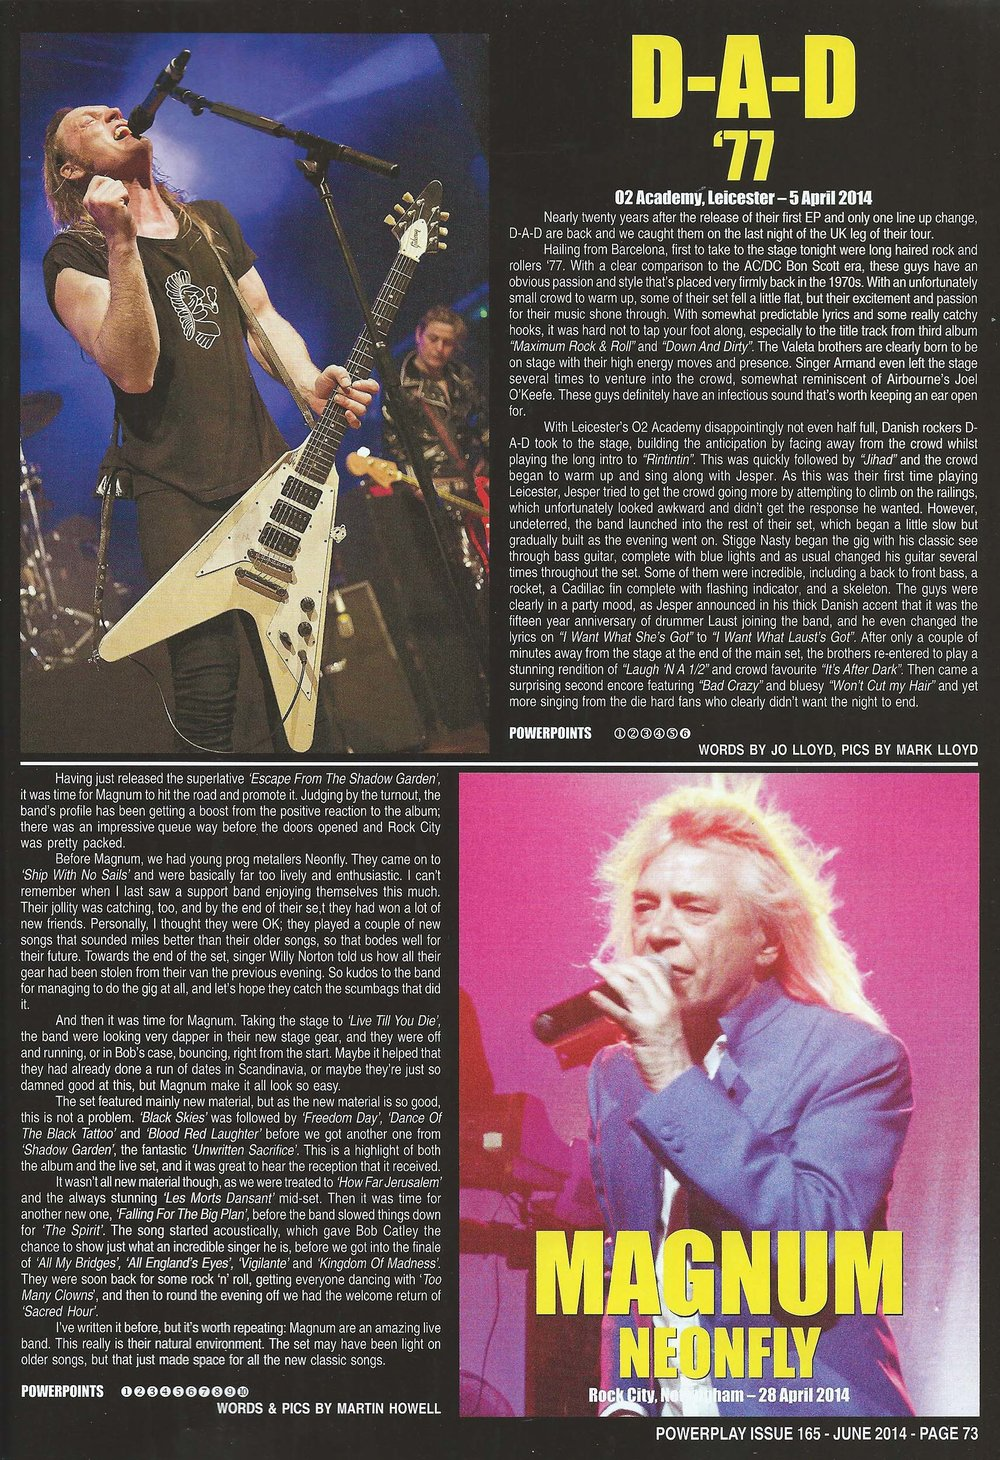 PowerPlay Magazine - D.A.D Live Review and Photos